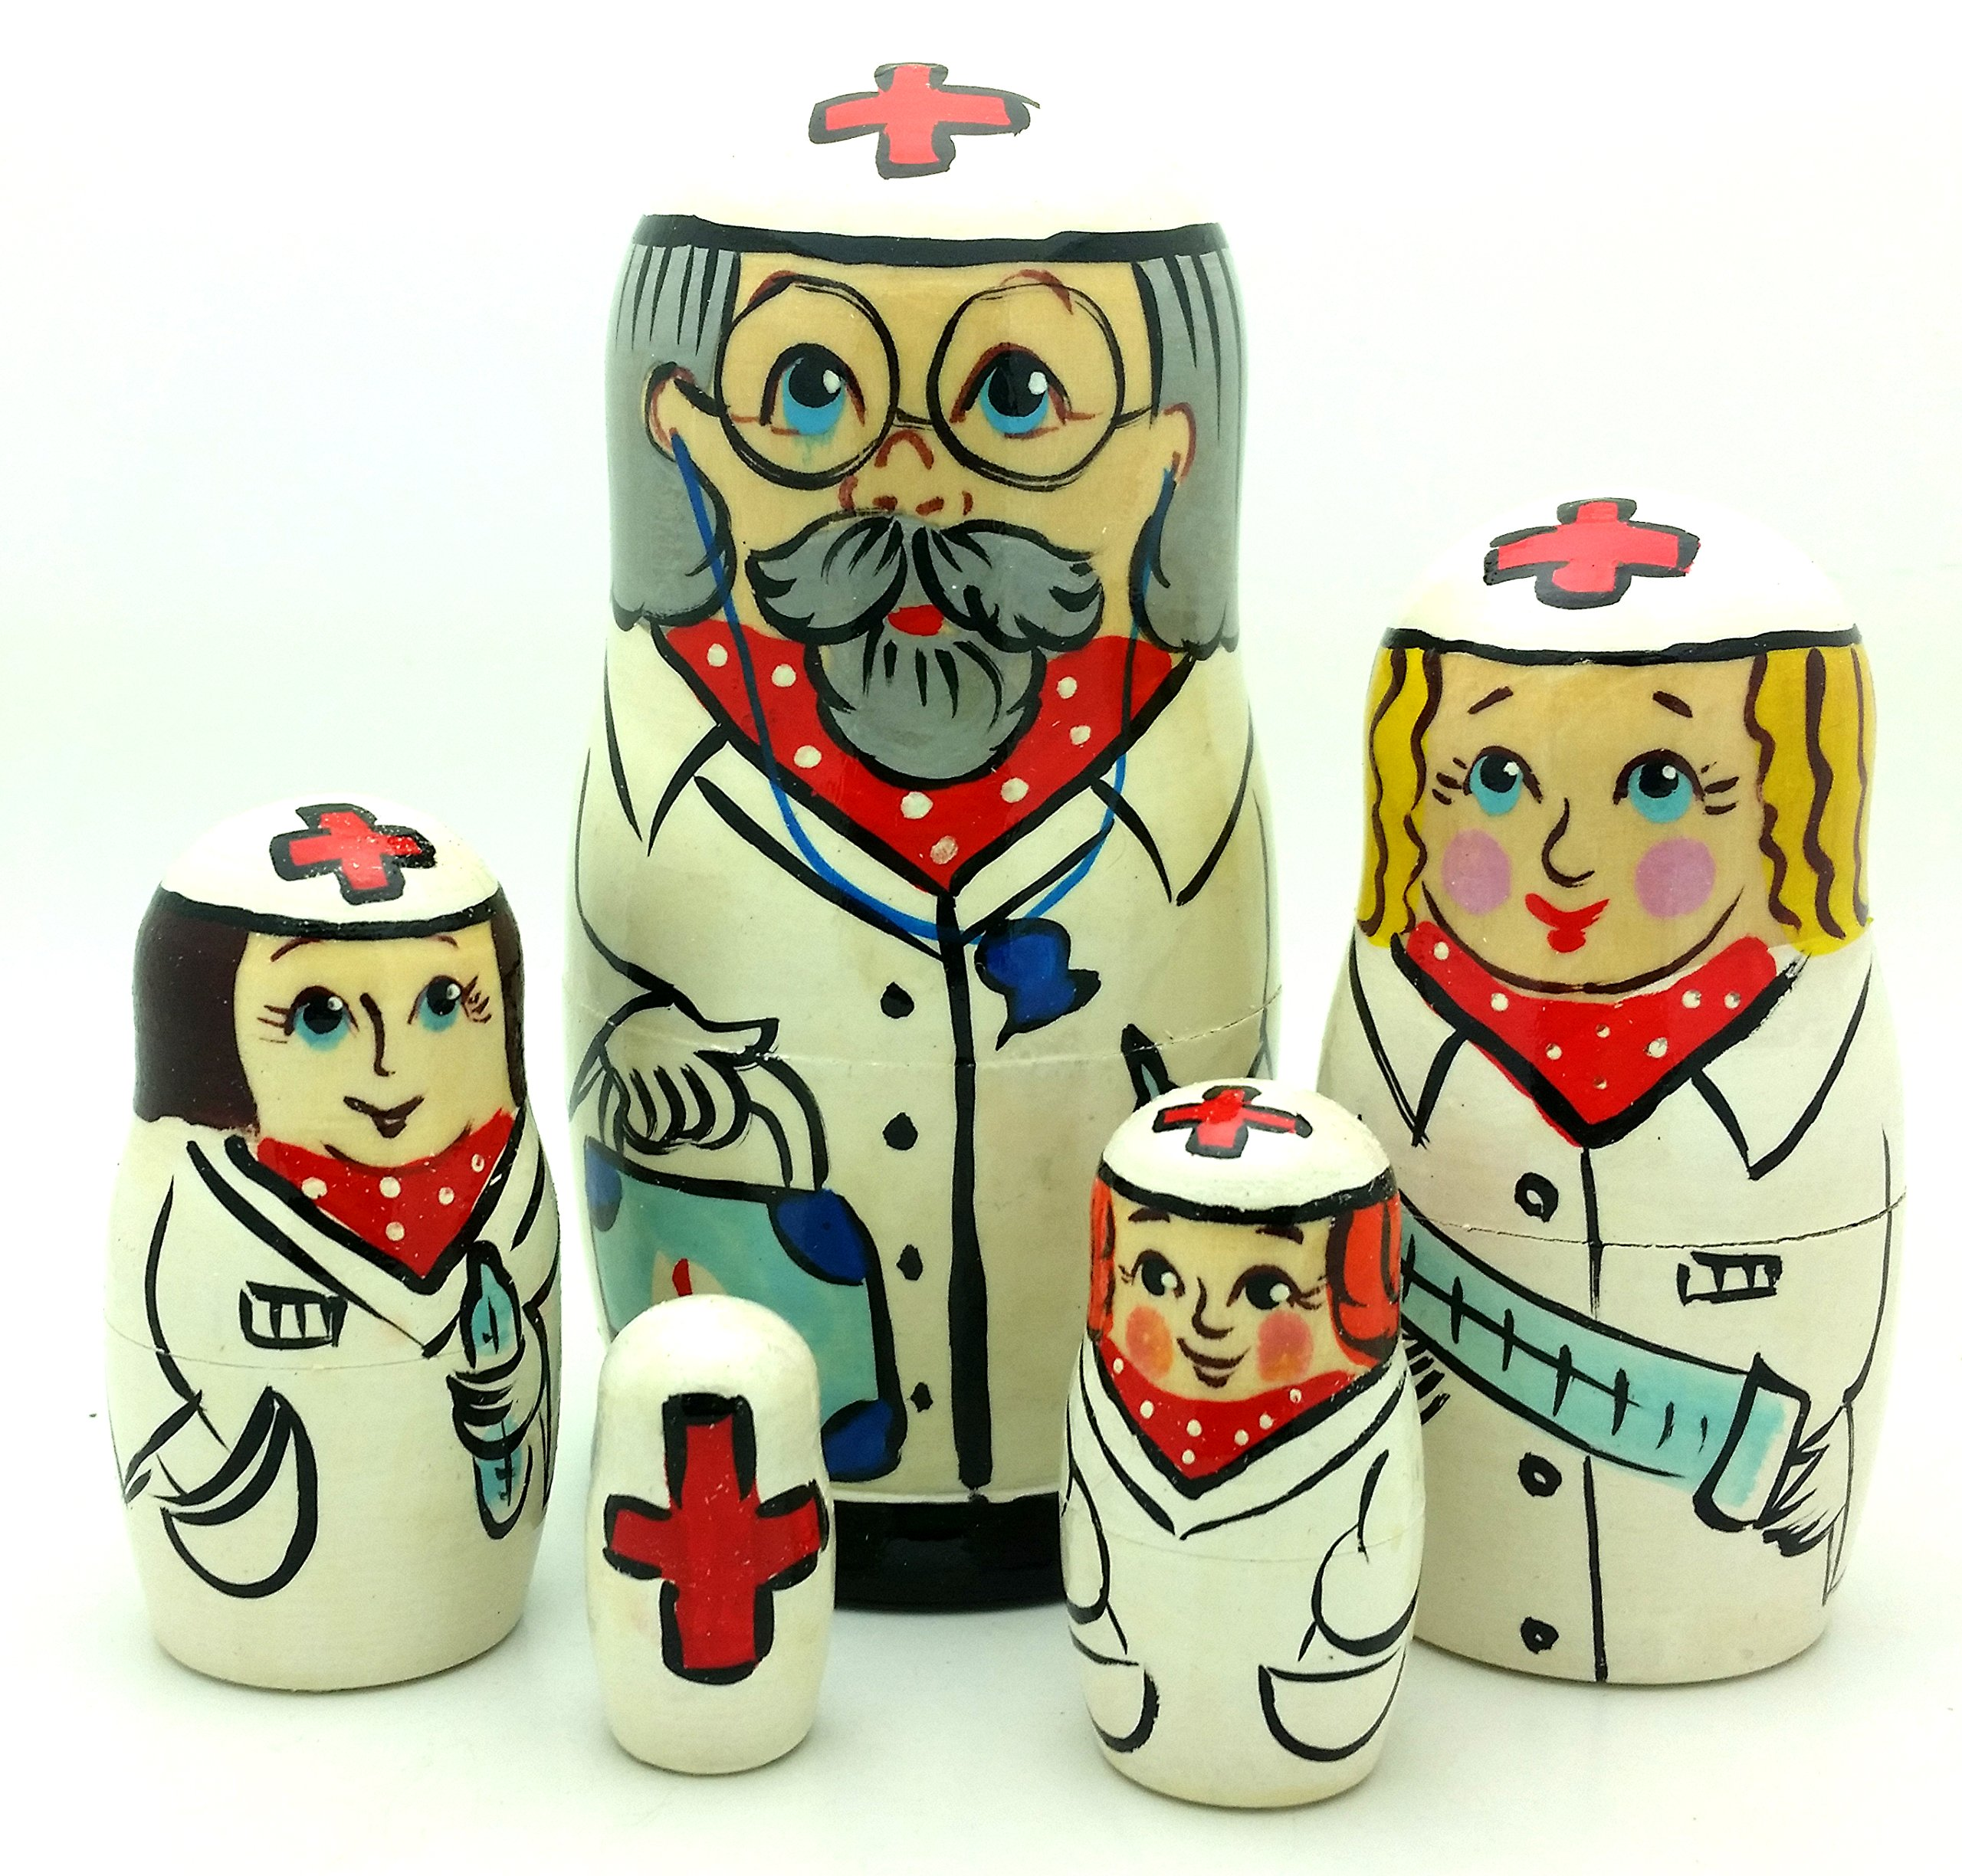 Doctor Nurse Russian Nesting Dolls Hand Painted 5 Piece Set 5'' Tall by BuyRussianGifts